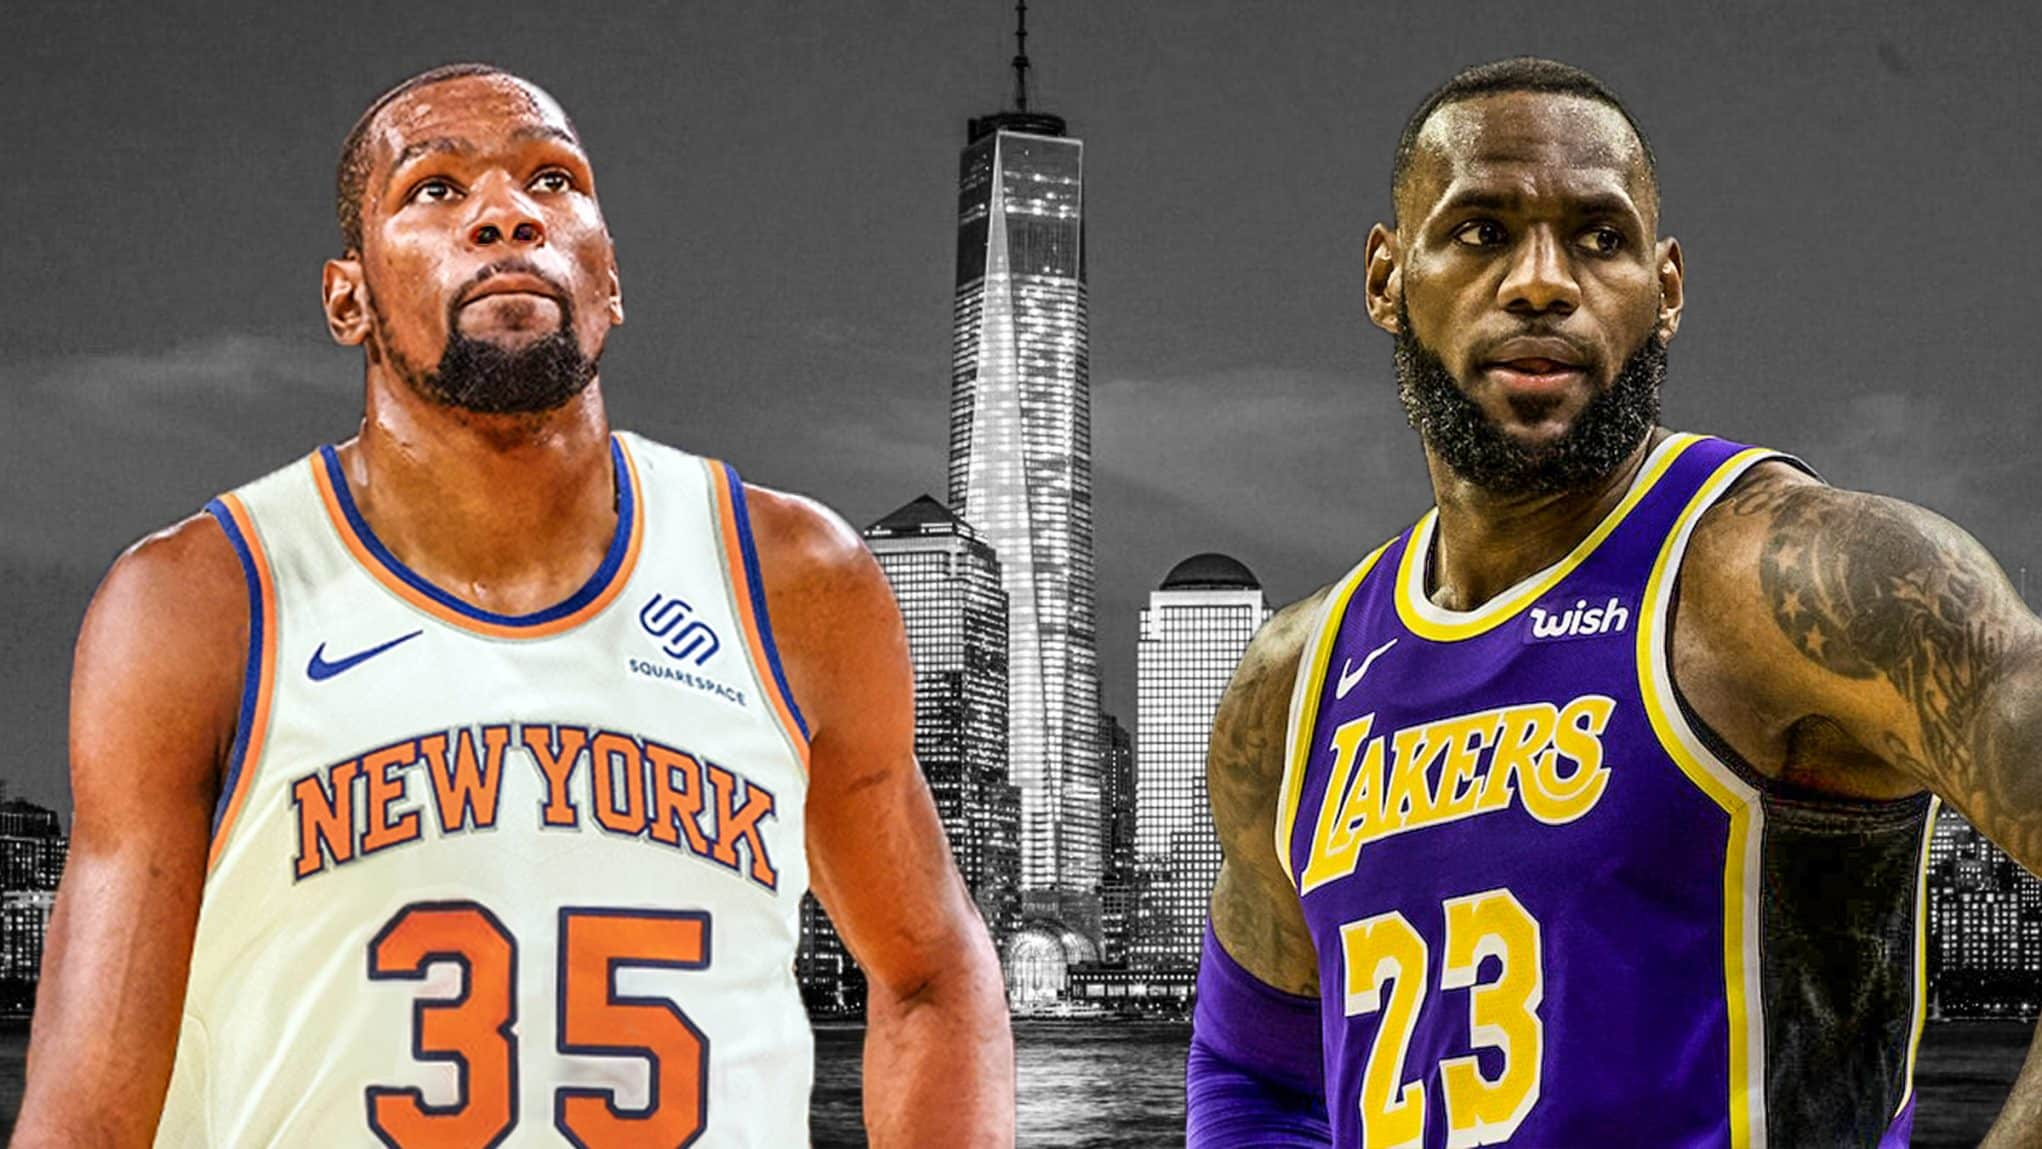 Nba Finals Schedule 2020 Dreaming of a New York Knicks Los Angeles Lakers 2020 NBA Finals